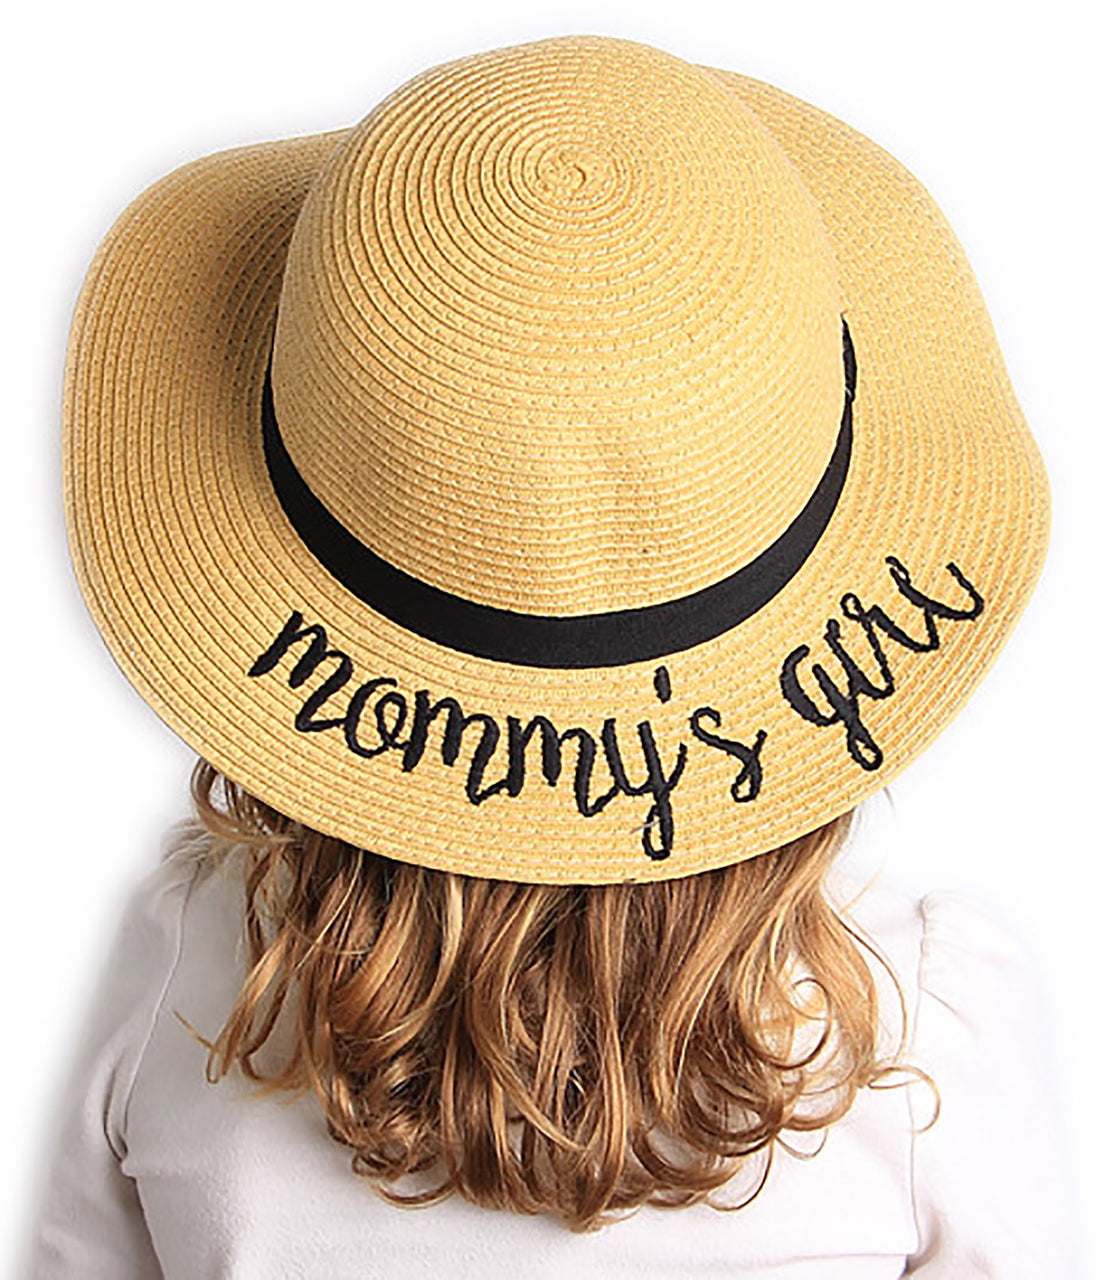 C.C Girls Embroidered Sun Hat - Mommy's Girl (Natural)